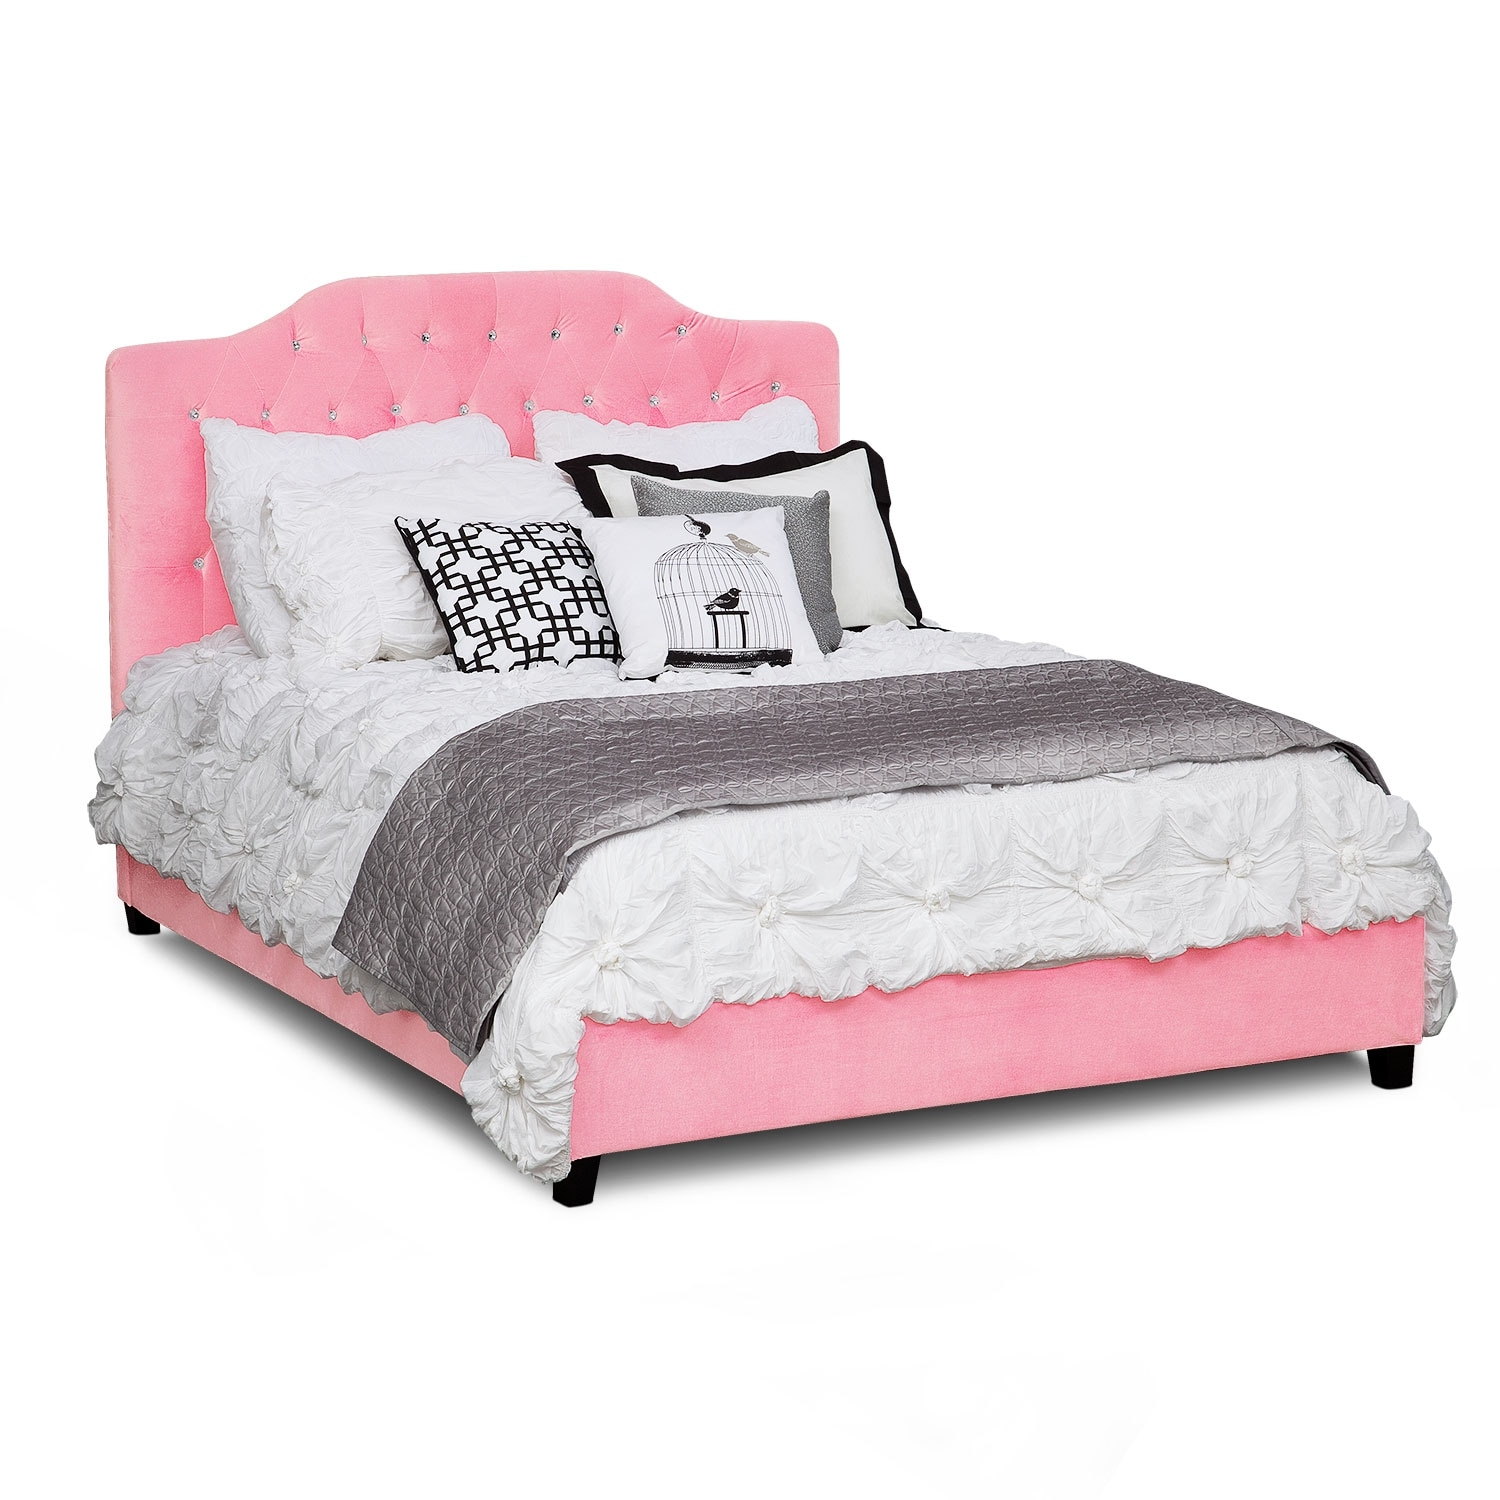 Valerie Queen Bed - Pink